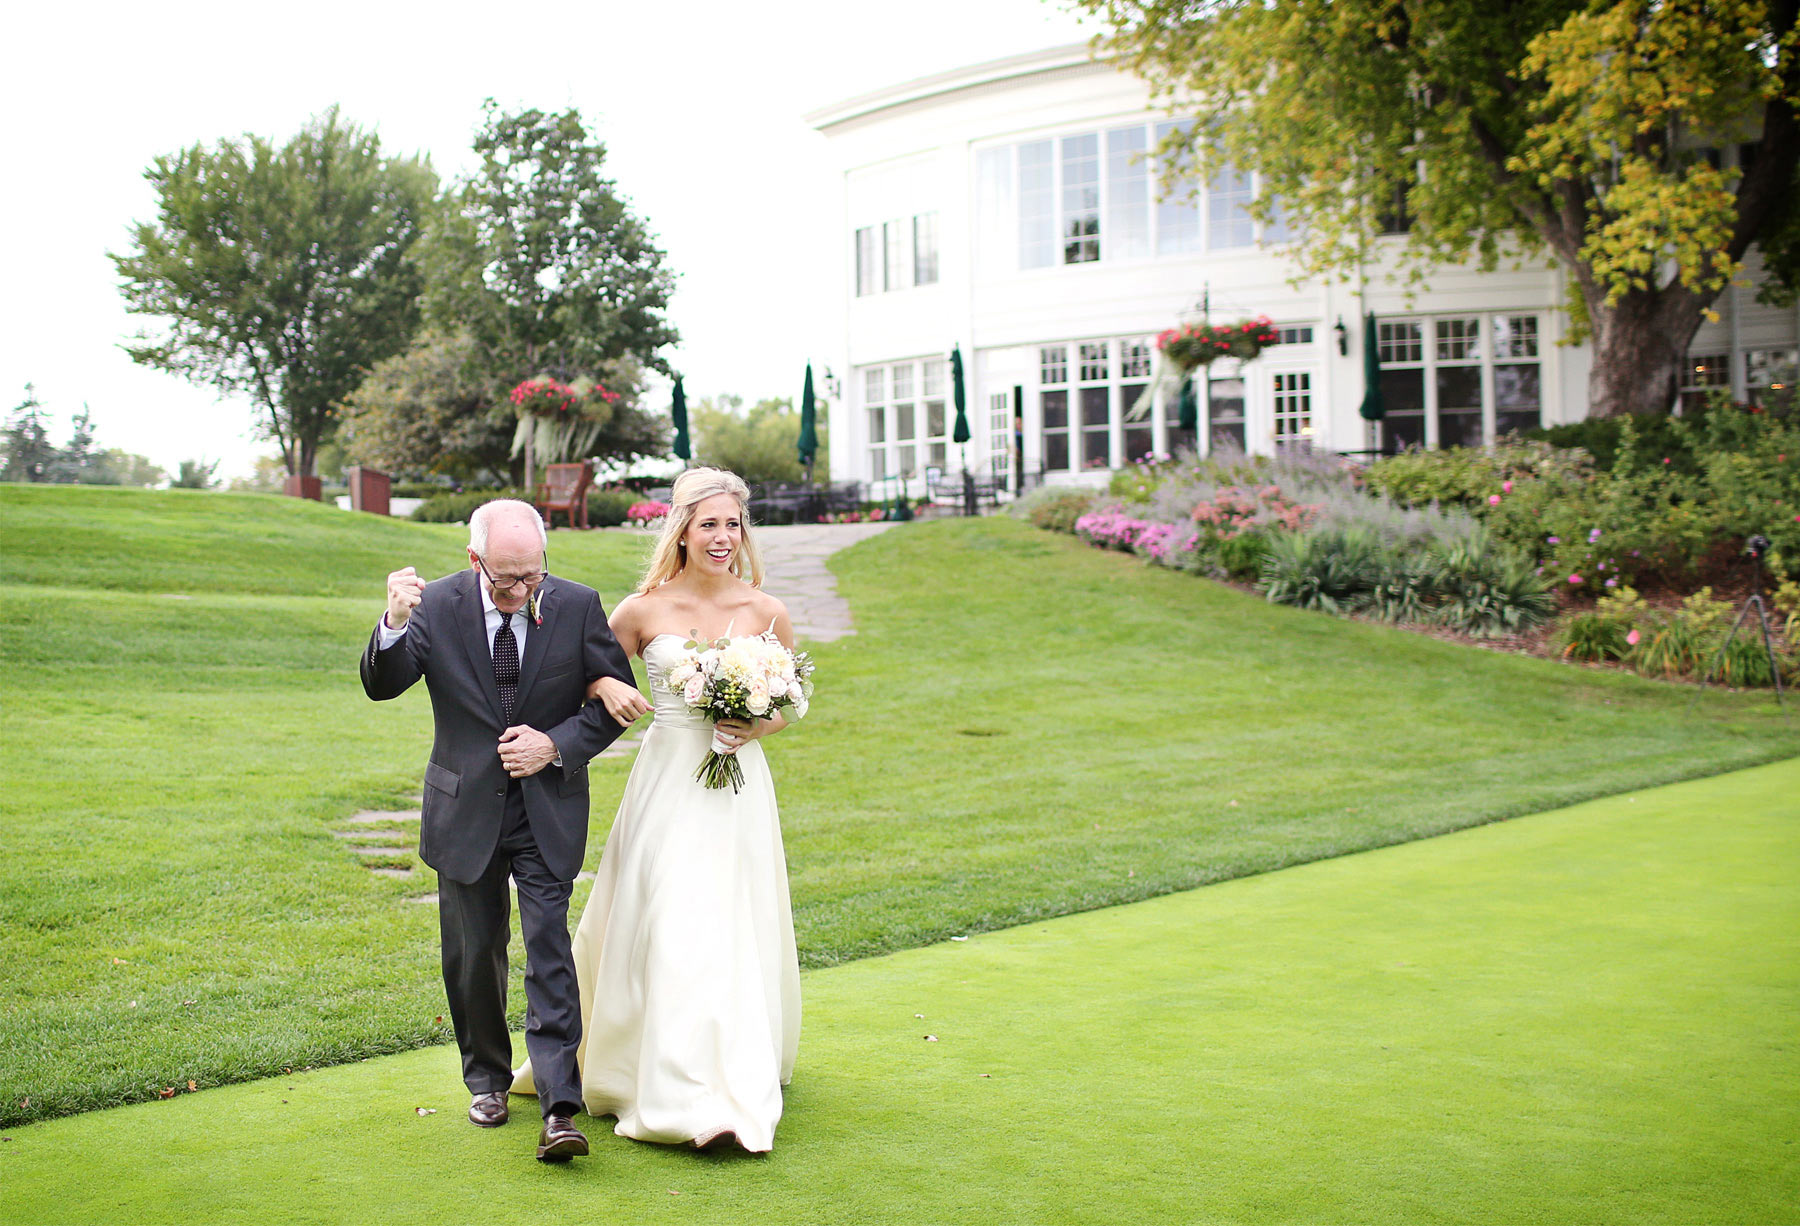 12-Minneapolis-Minnesota-Wedding-Photographer-by-Andrew-Vick-Photography-Fall-Autumn-Minikahda-Club-Ceremony-Bride-Father-Parents-Processional-Golf-Course-Krissy-and-James.jpg